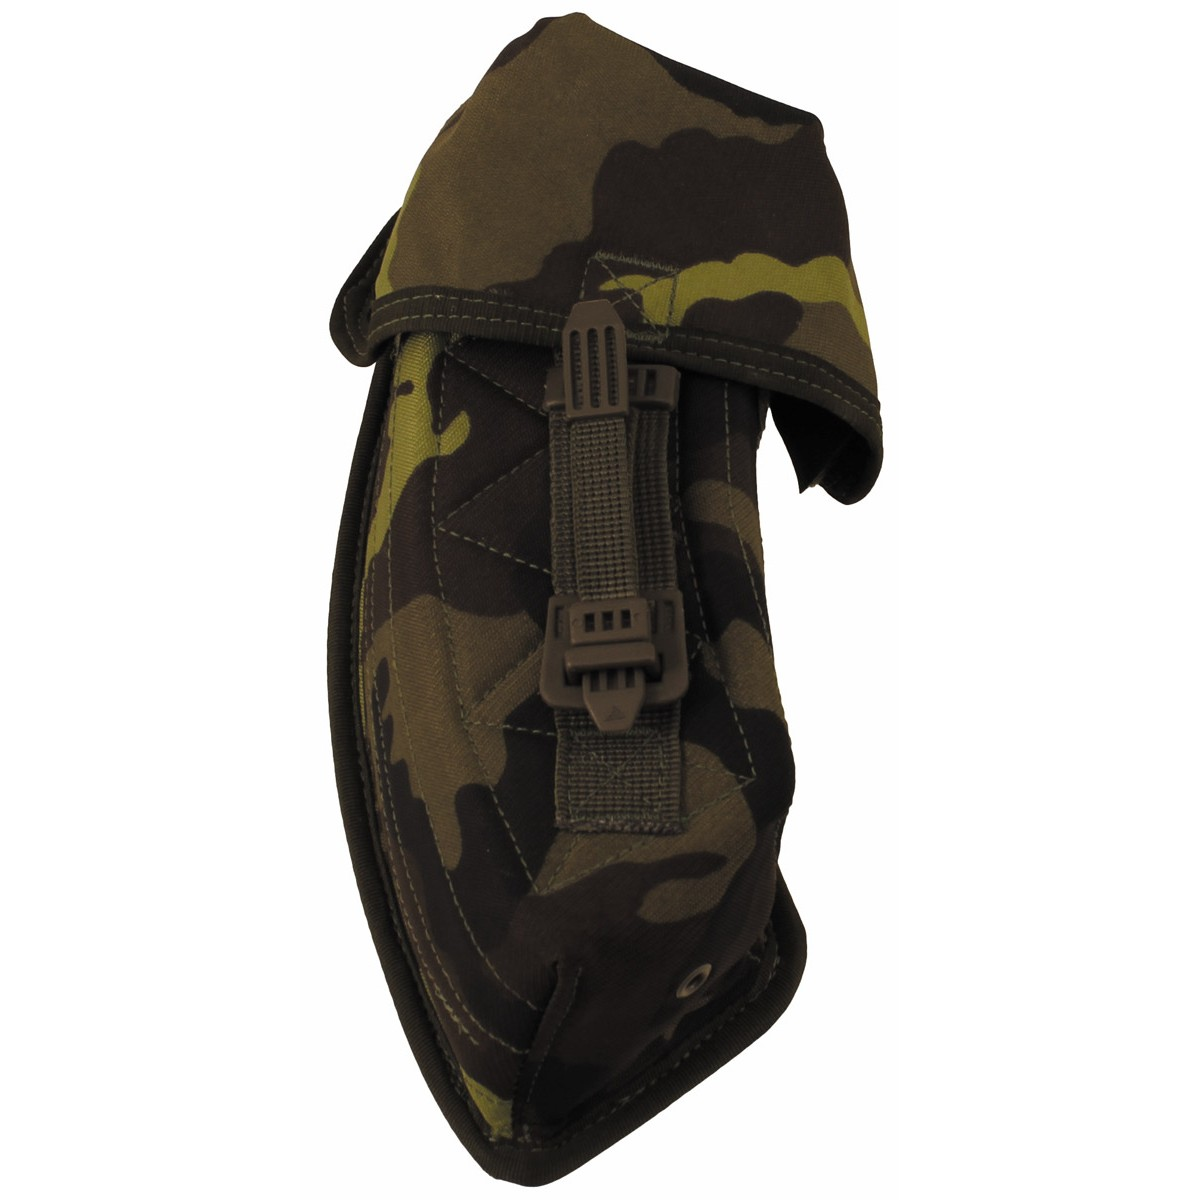 VZ58,SA58 Professinal CZ Army Double Ammo Pouch - M95 Camo Pattern